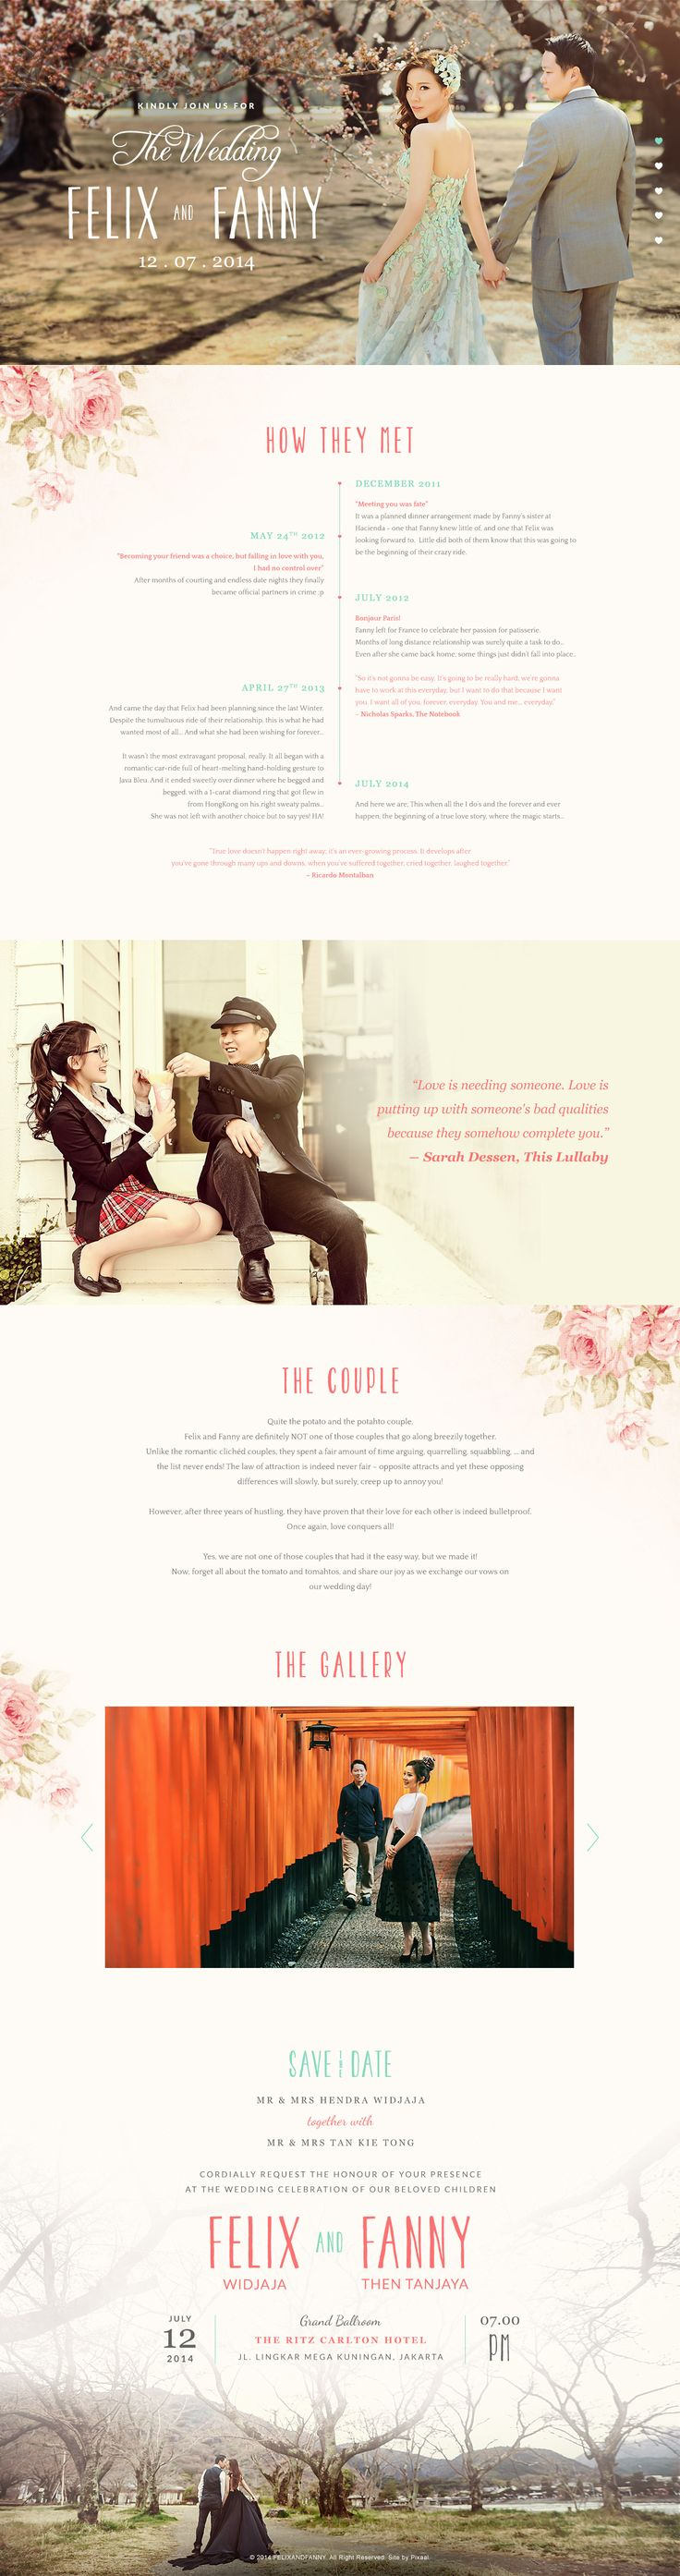 Web design and development for Felix and Fanny wedding in Jakarta, Indonesia